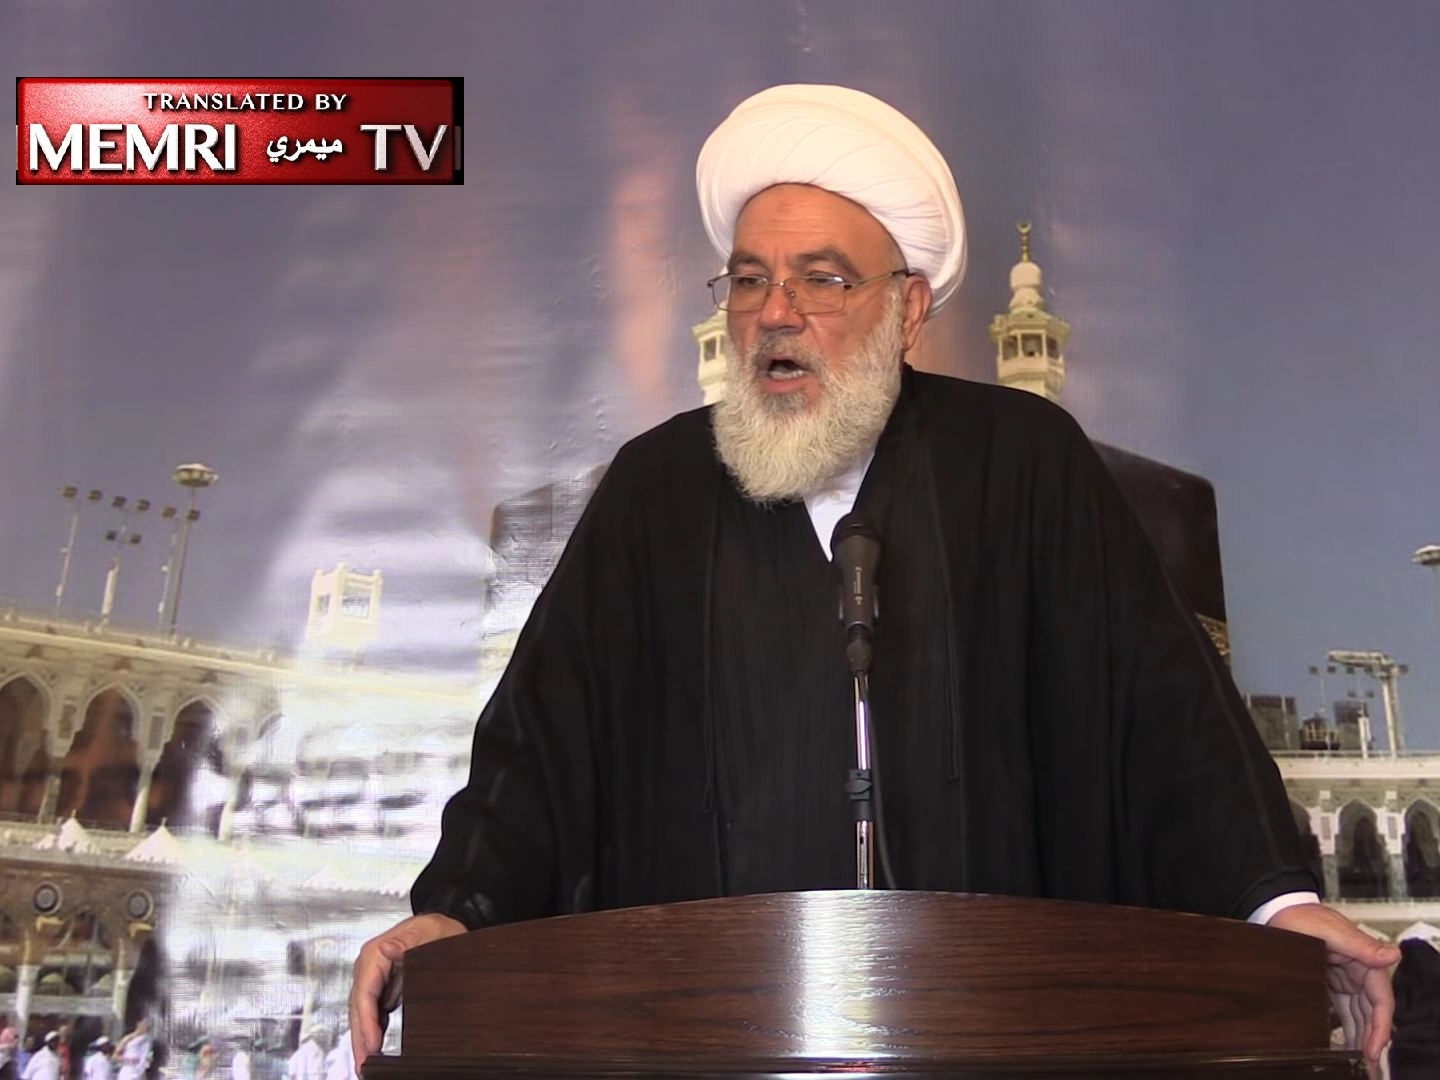 Fmr. Hizbullah Leader Tufayli Criticizes Intervention in Syria: The Shiites Must Reach Understanding with All Sunnis